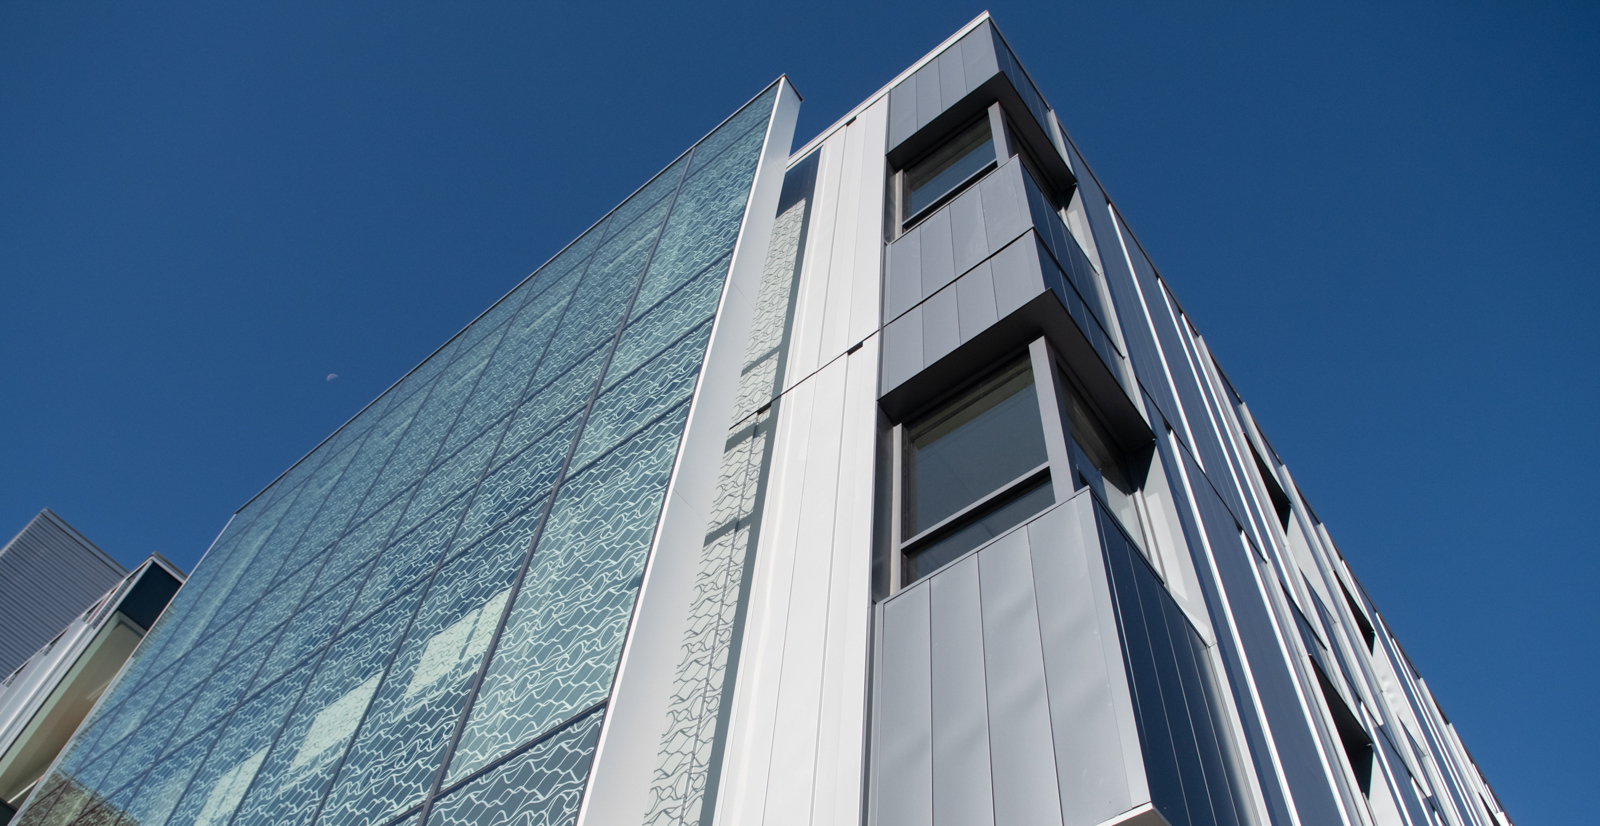 Underside view of corner of Micron Center for Materials Research